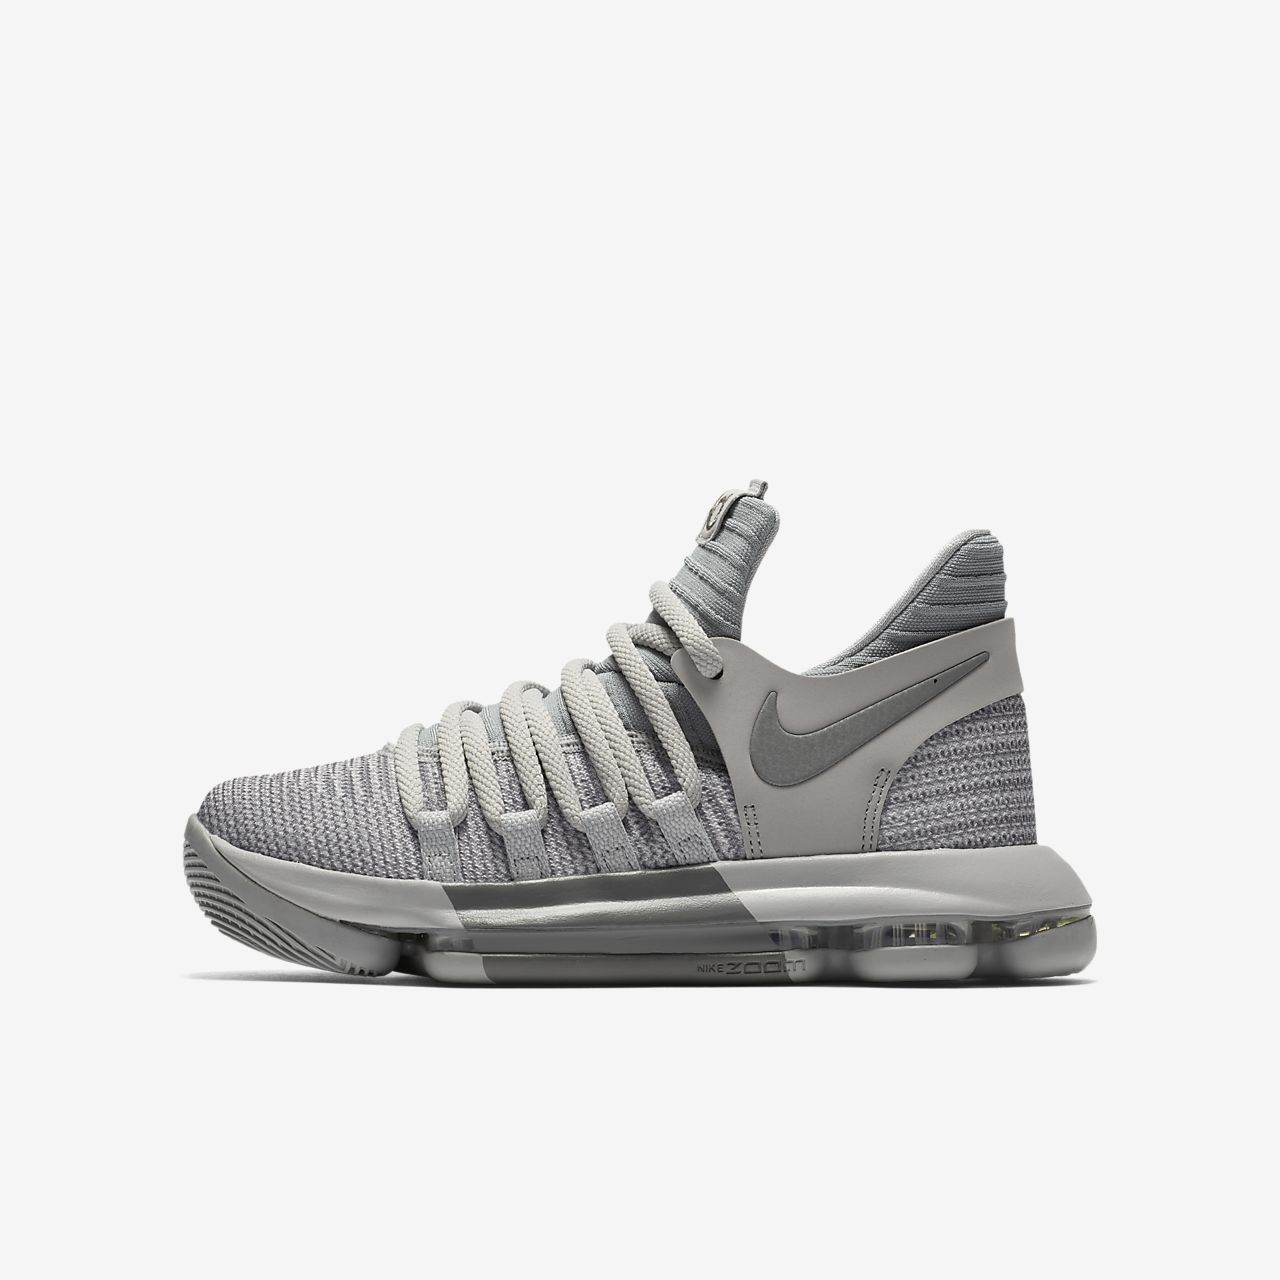 Womens Nike Low Top Basketball Shoes